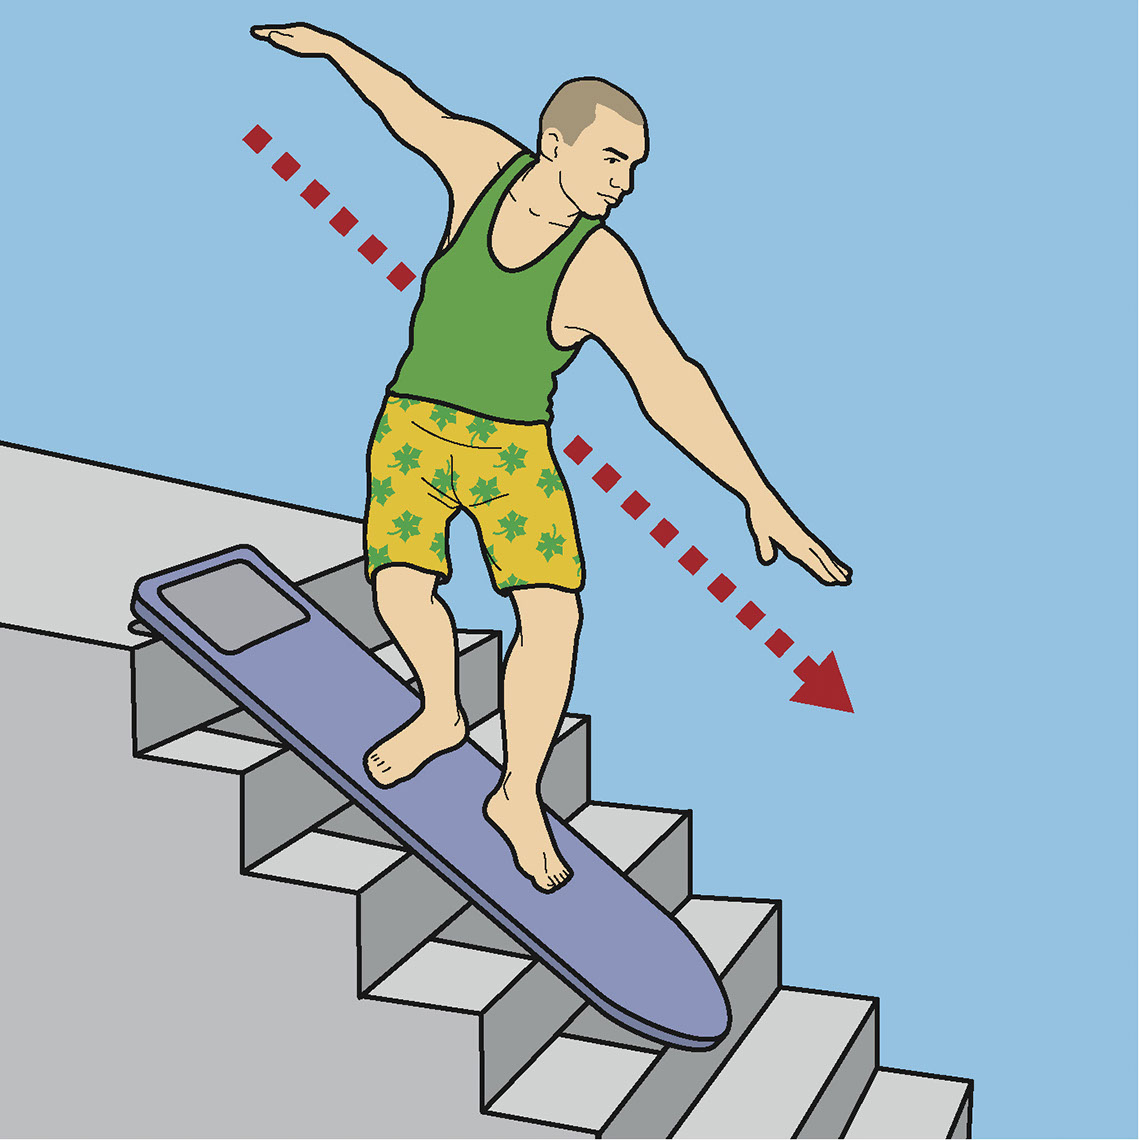 illustration-Technical and How To_Loaded Stairs Surf-Jon Rogers